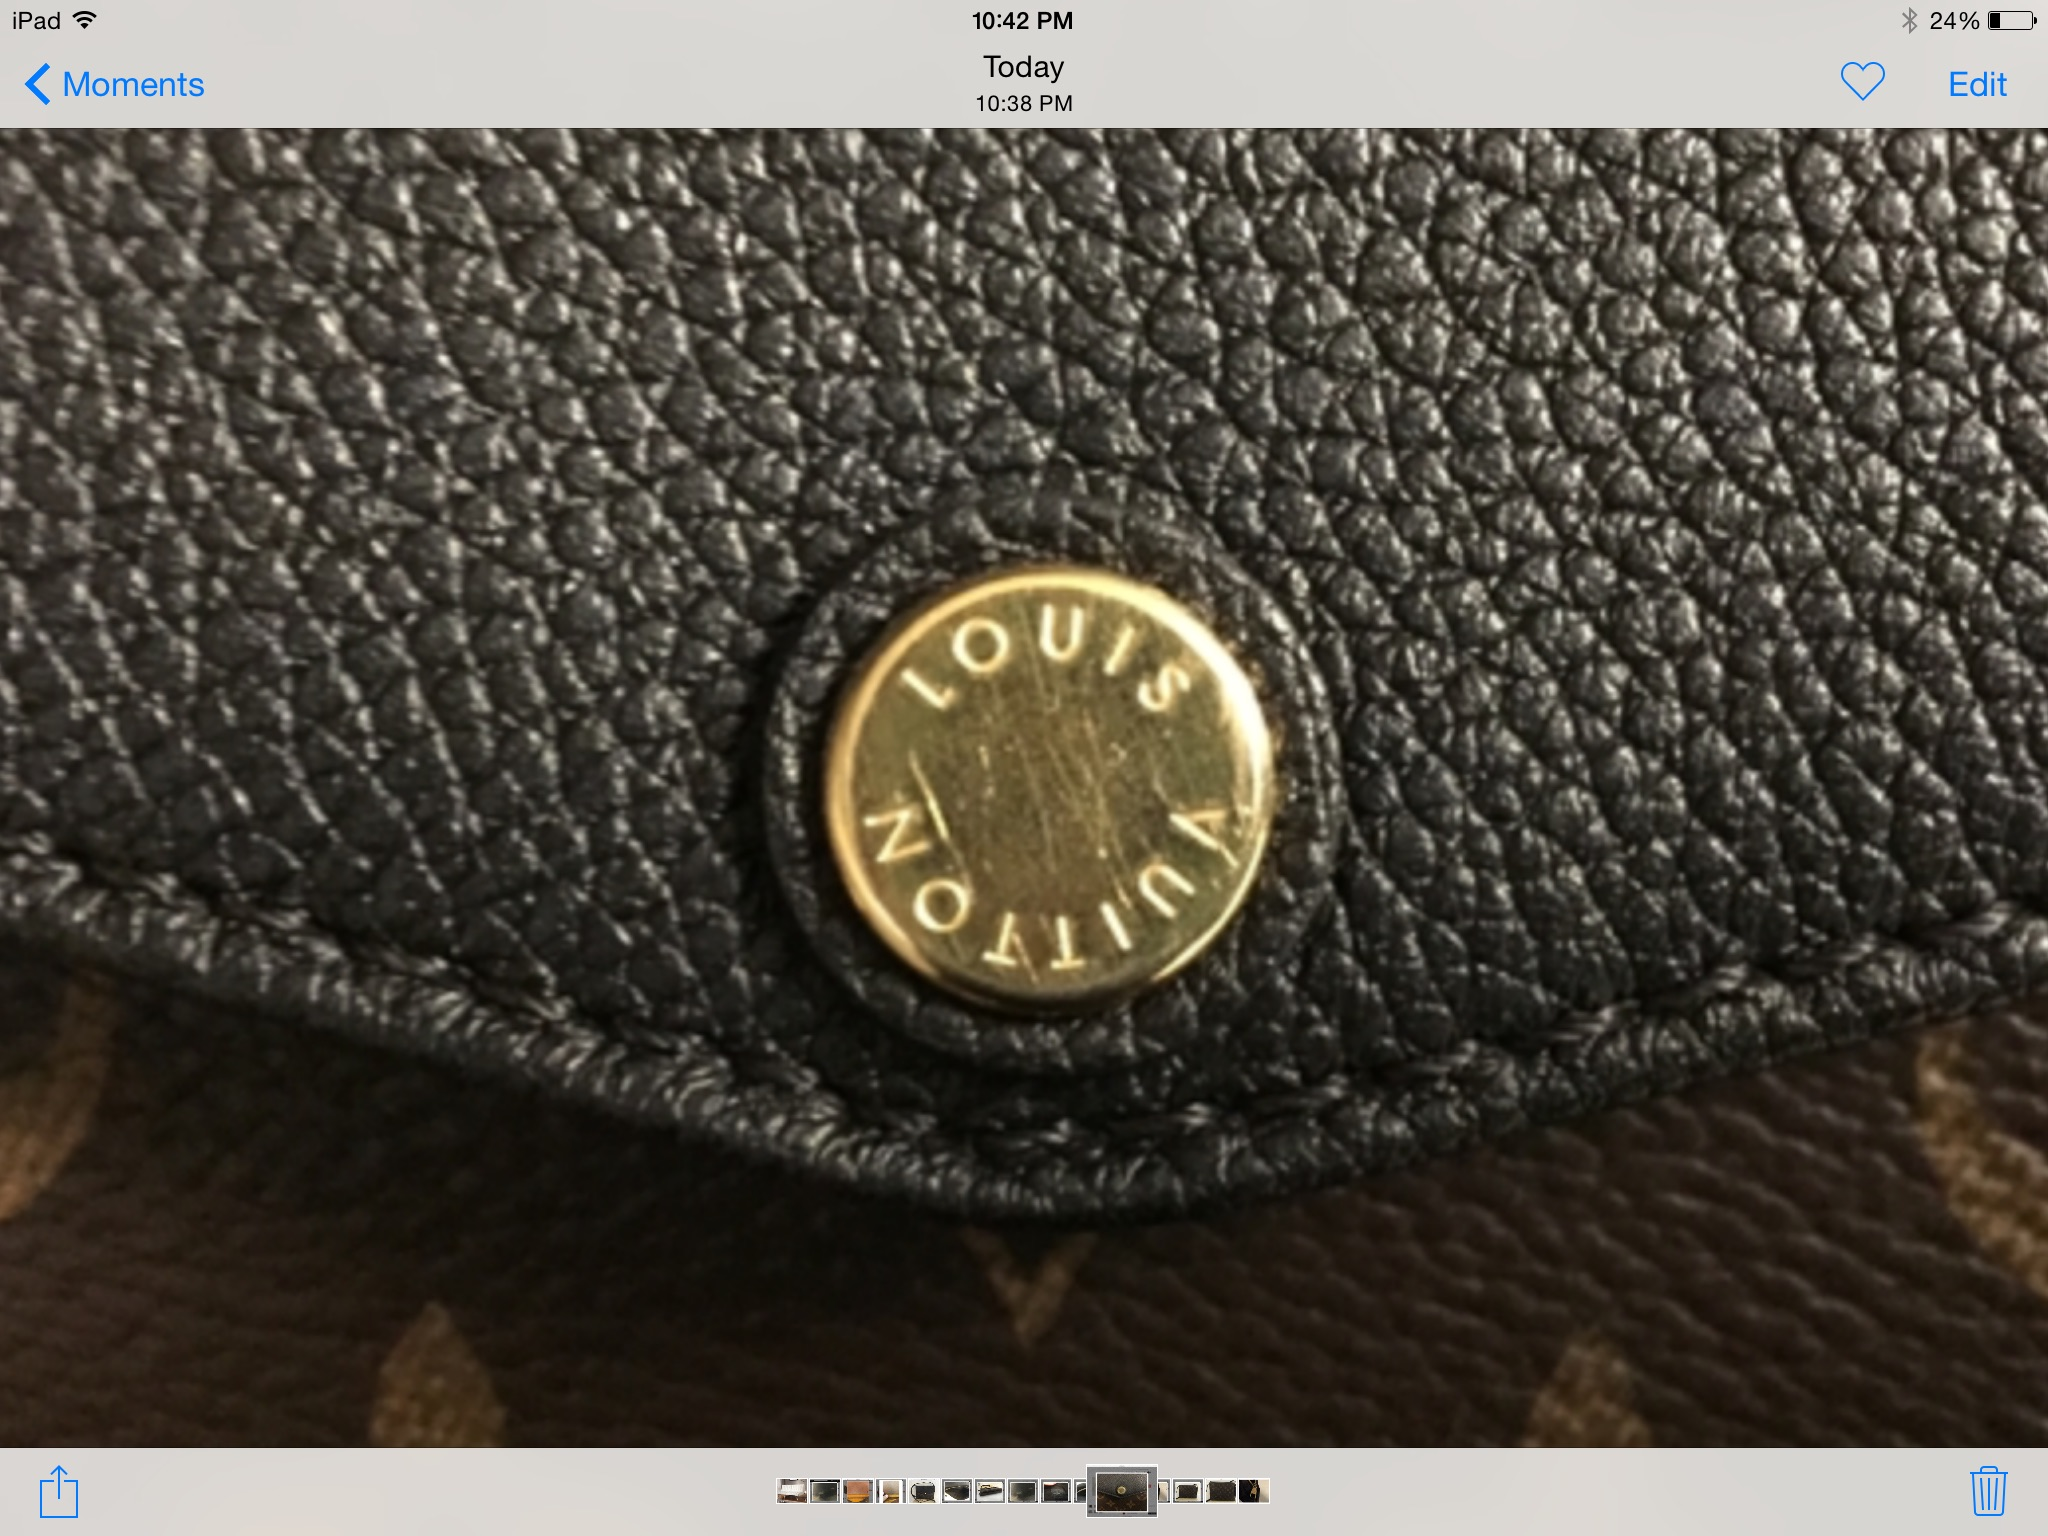 f9736f2f3b23 ... authenticity because the letters on the lv label look worn off. It  doesn t look like a heat stamp. Can you help me  It s made in the USA.  Thank you.